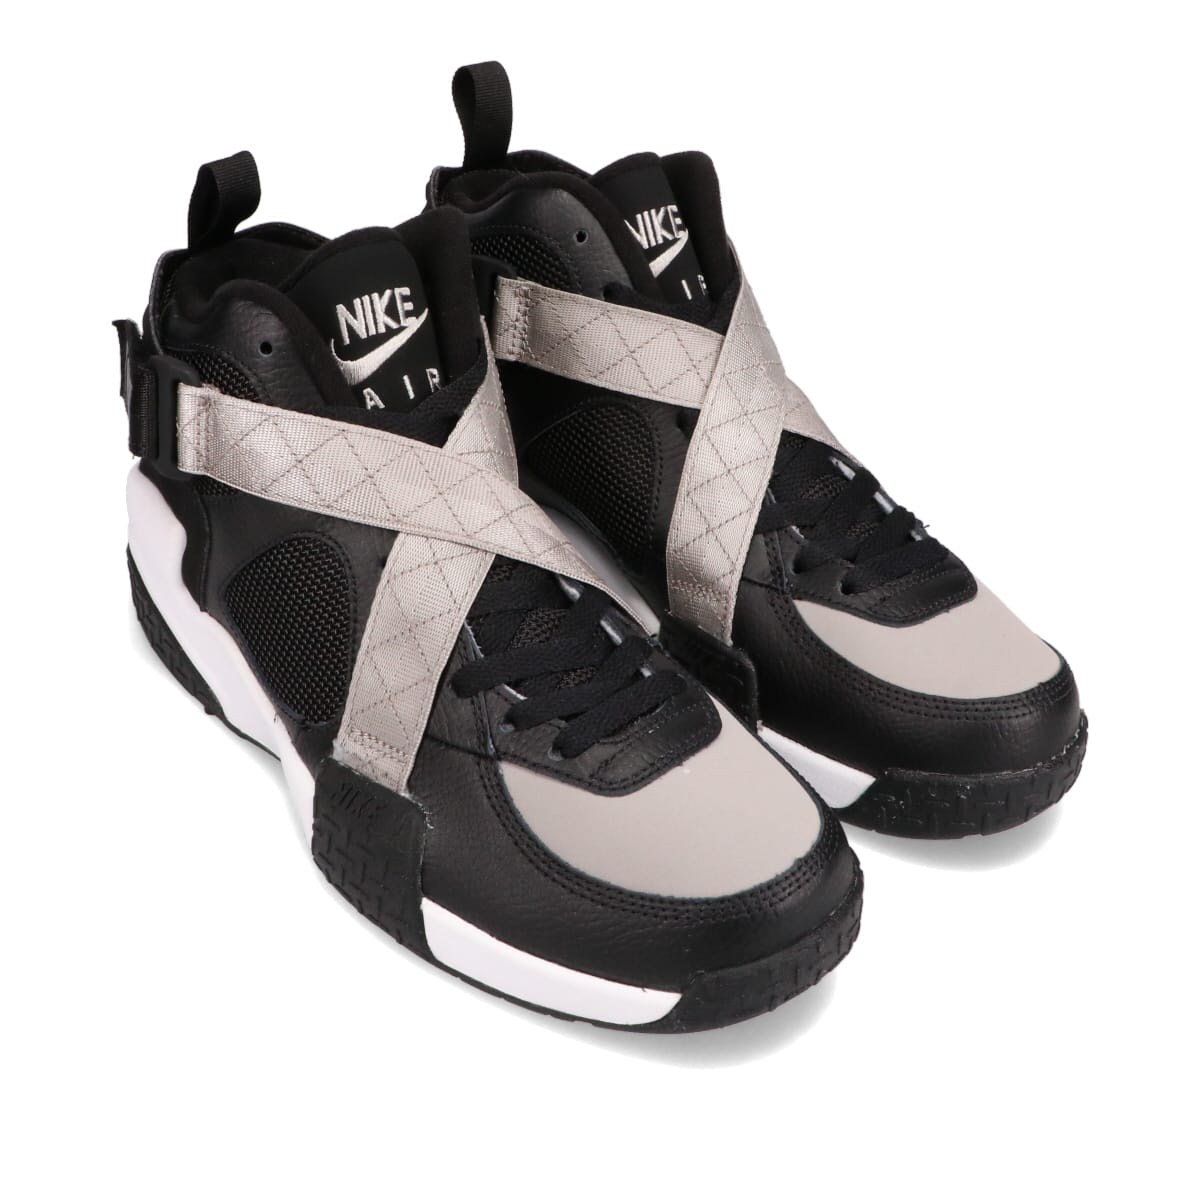 NIKE AIR RAID BLACK/WOLF GREY-WHITE 20HO-I_photo_large